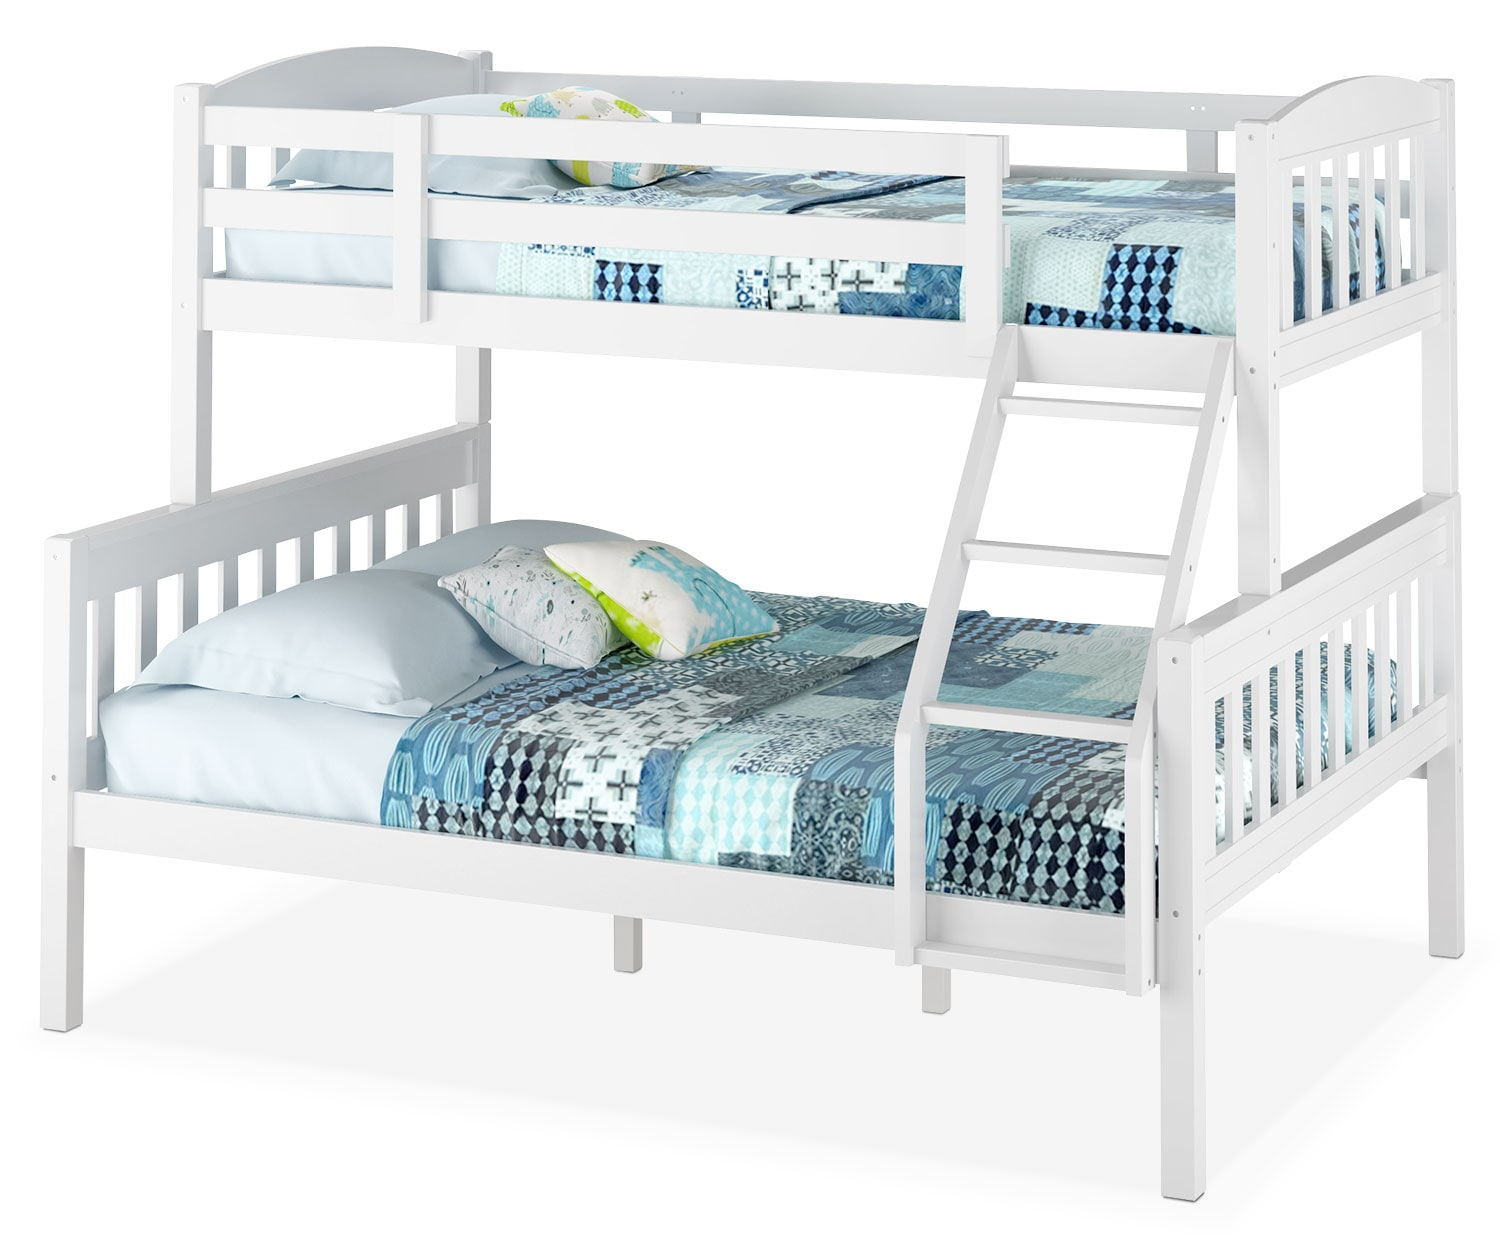 CorLiving Twin/Full Bunk Bed with Slat Headboards – White